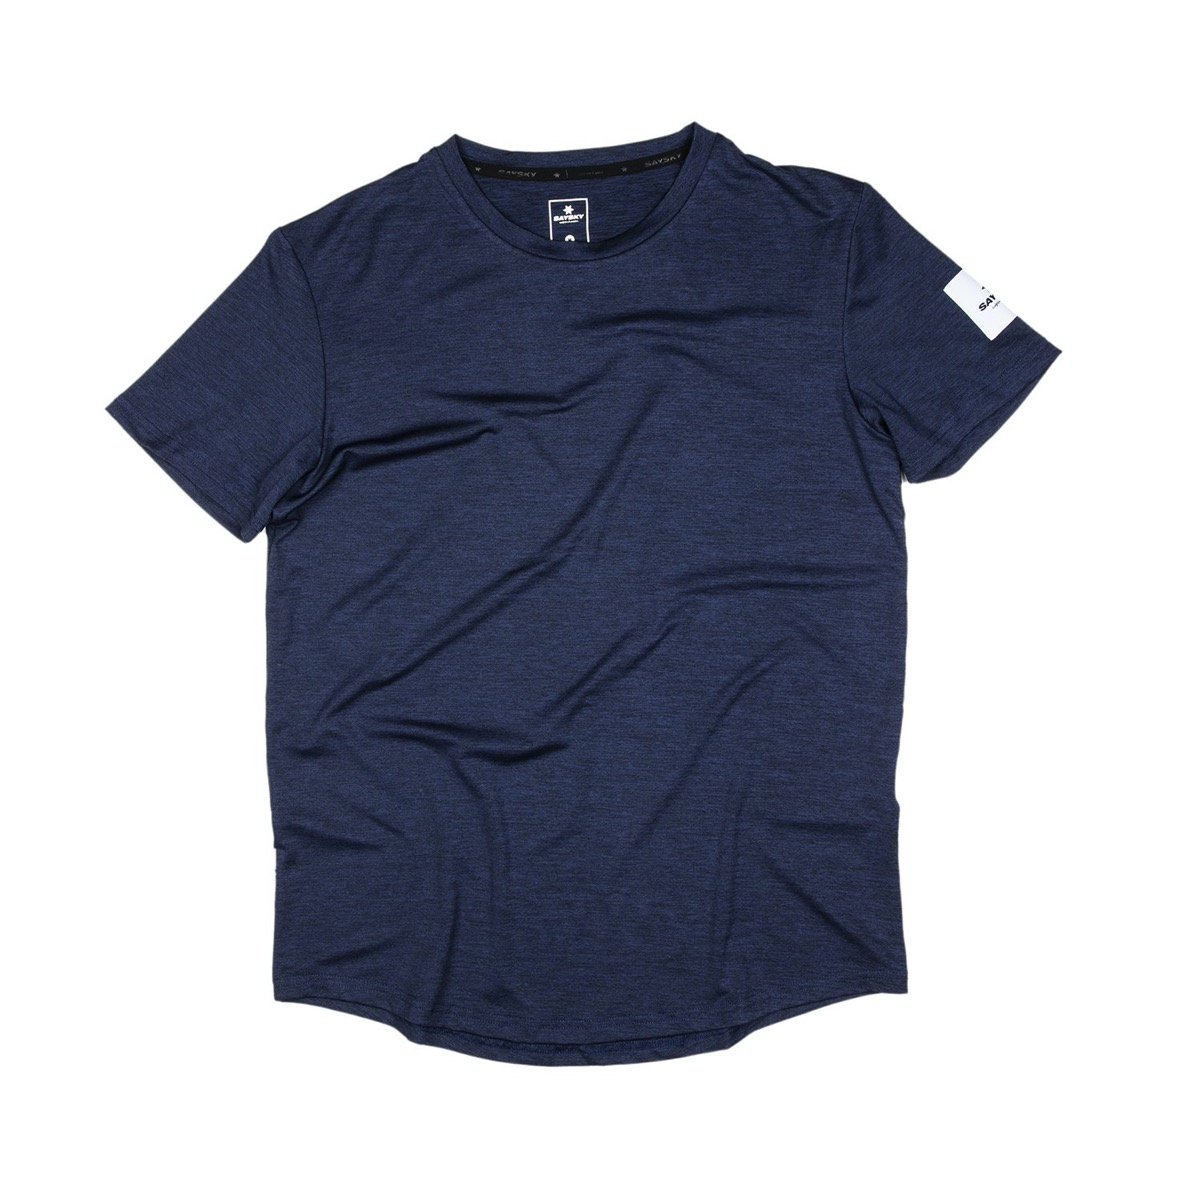 SaySky Clean Pace Tee Unisex